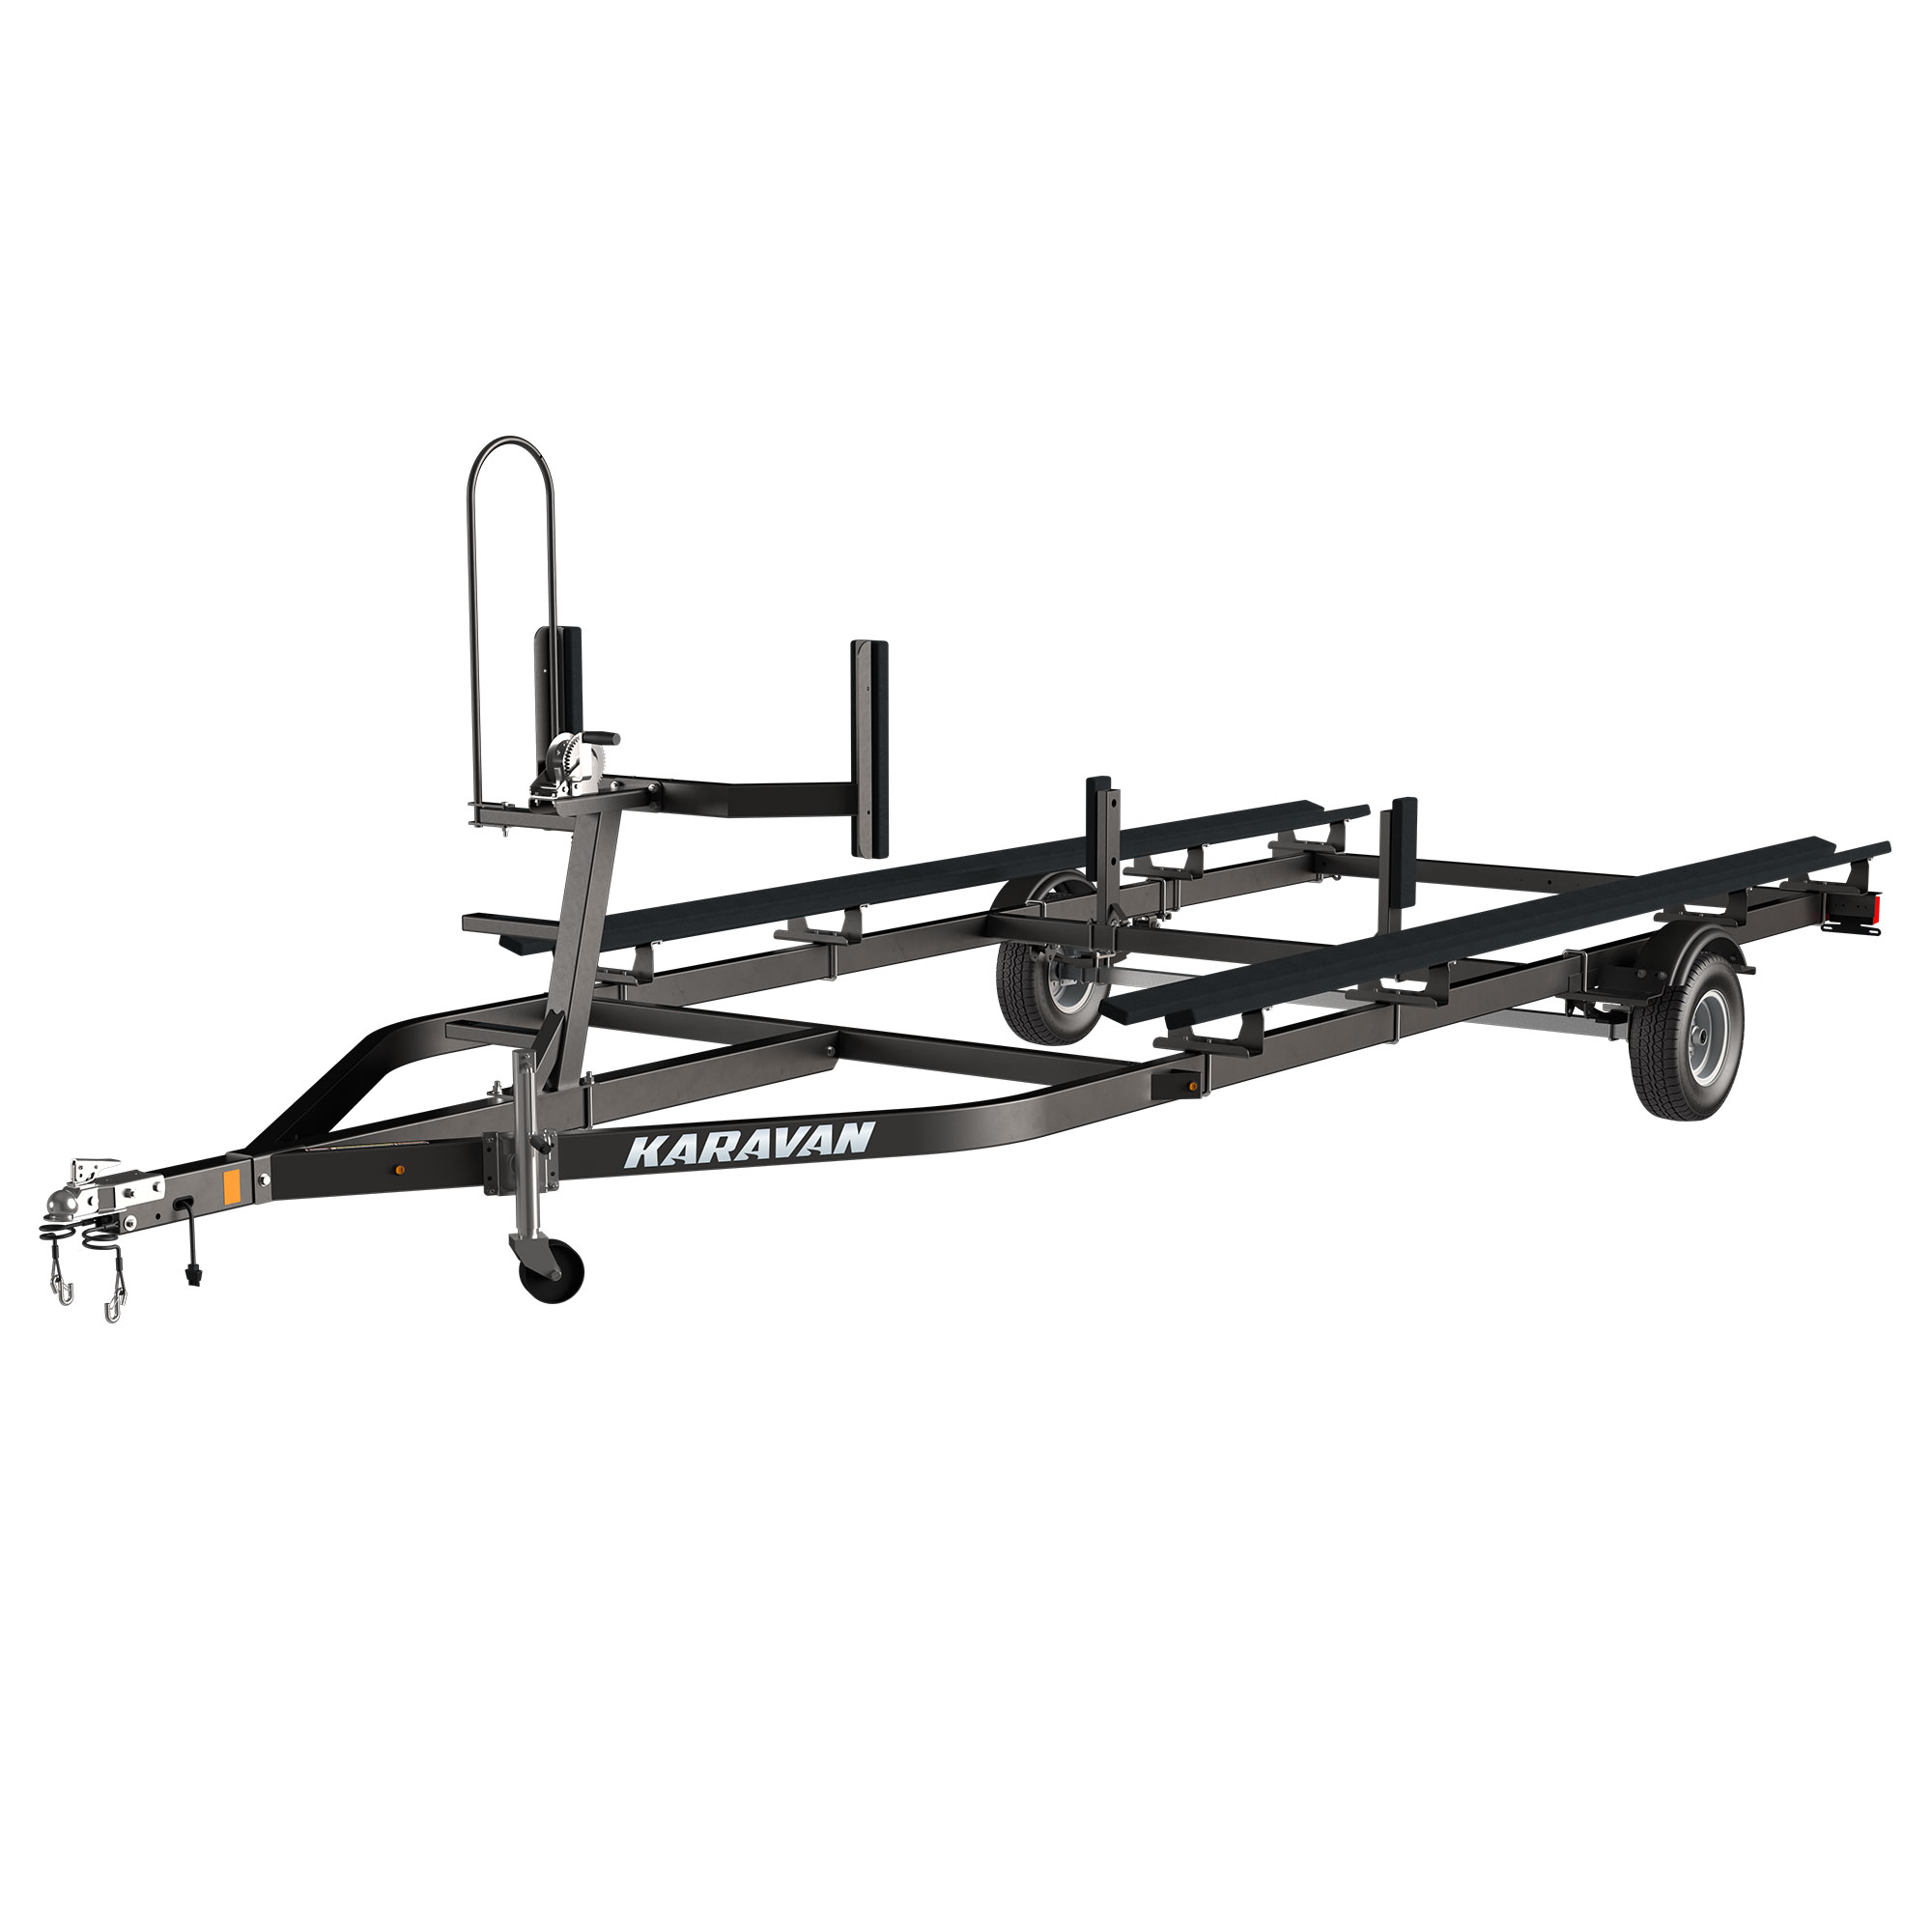 Karavan Trailer's Single Axel Midsize Pontoon Trailer, model number KDP-1822-BT